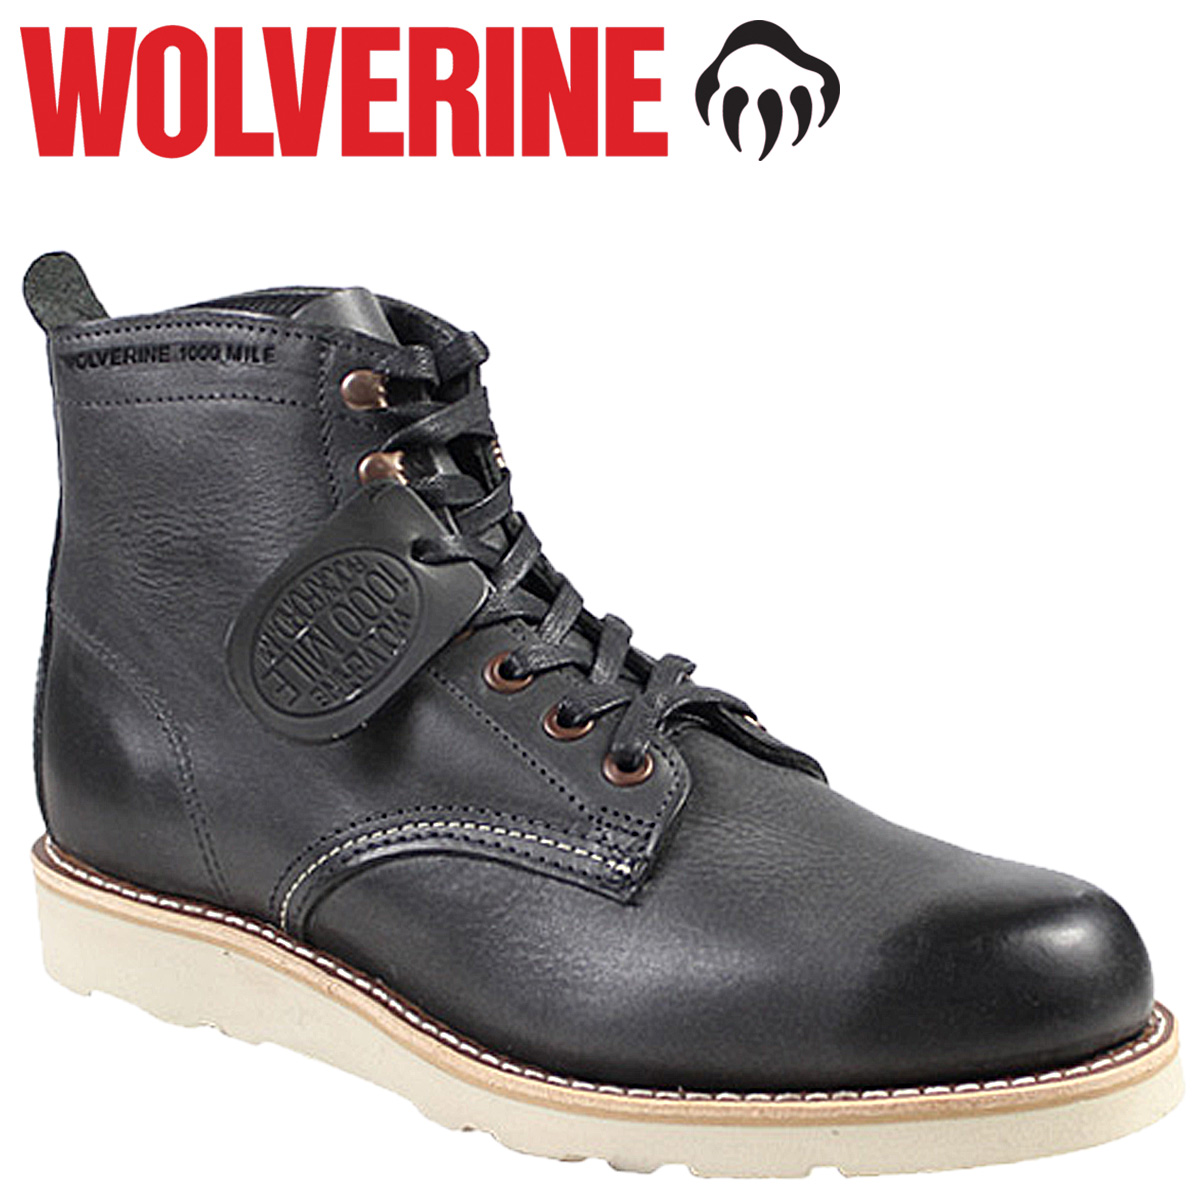 7e751f7e4bc Point 2 x Wolverine WOLVERINE Prestwick 1000 mile wedge boots PRESTWICK  1000 MILE WEDGE BOOT D wise leather men's work boots W00914 black [11 / 14  new ...